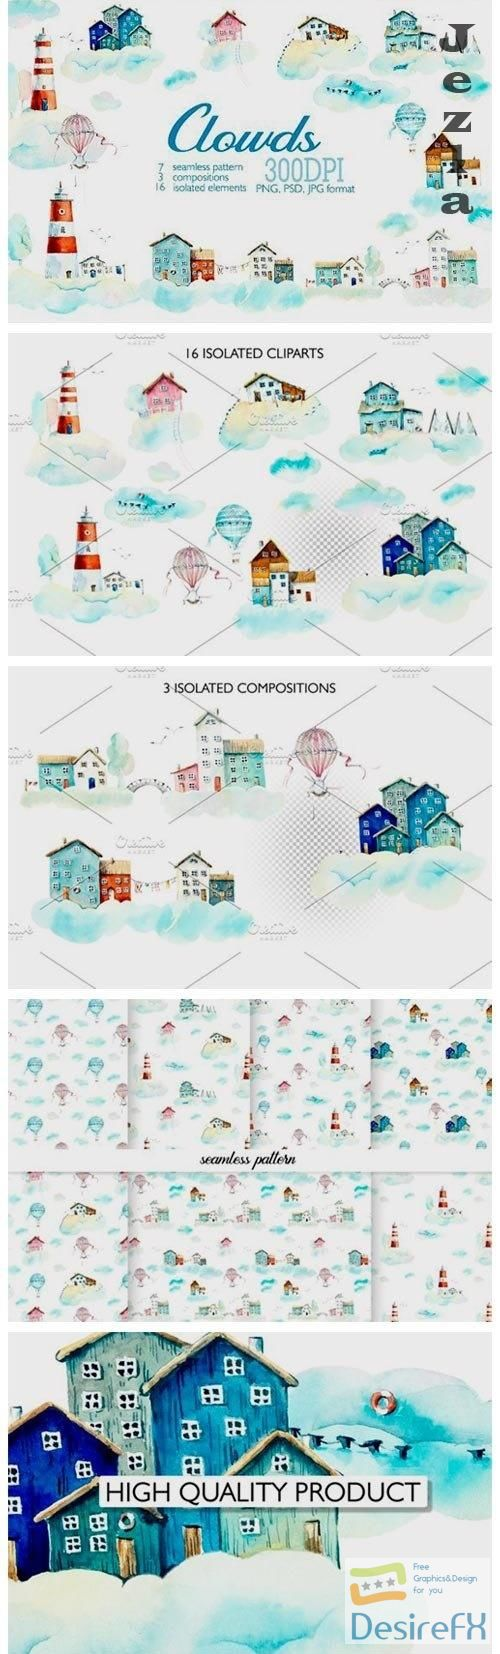 Watercolor houses in clouds - 4031732